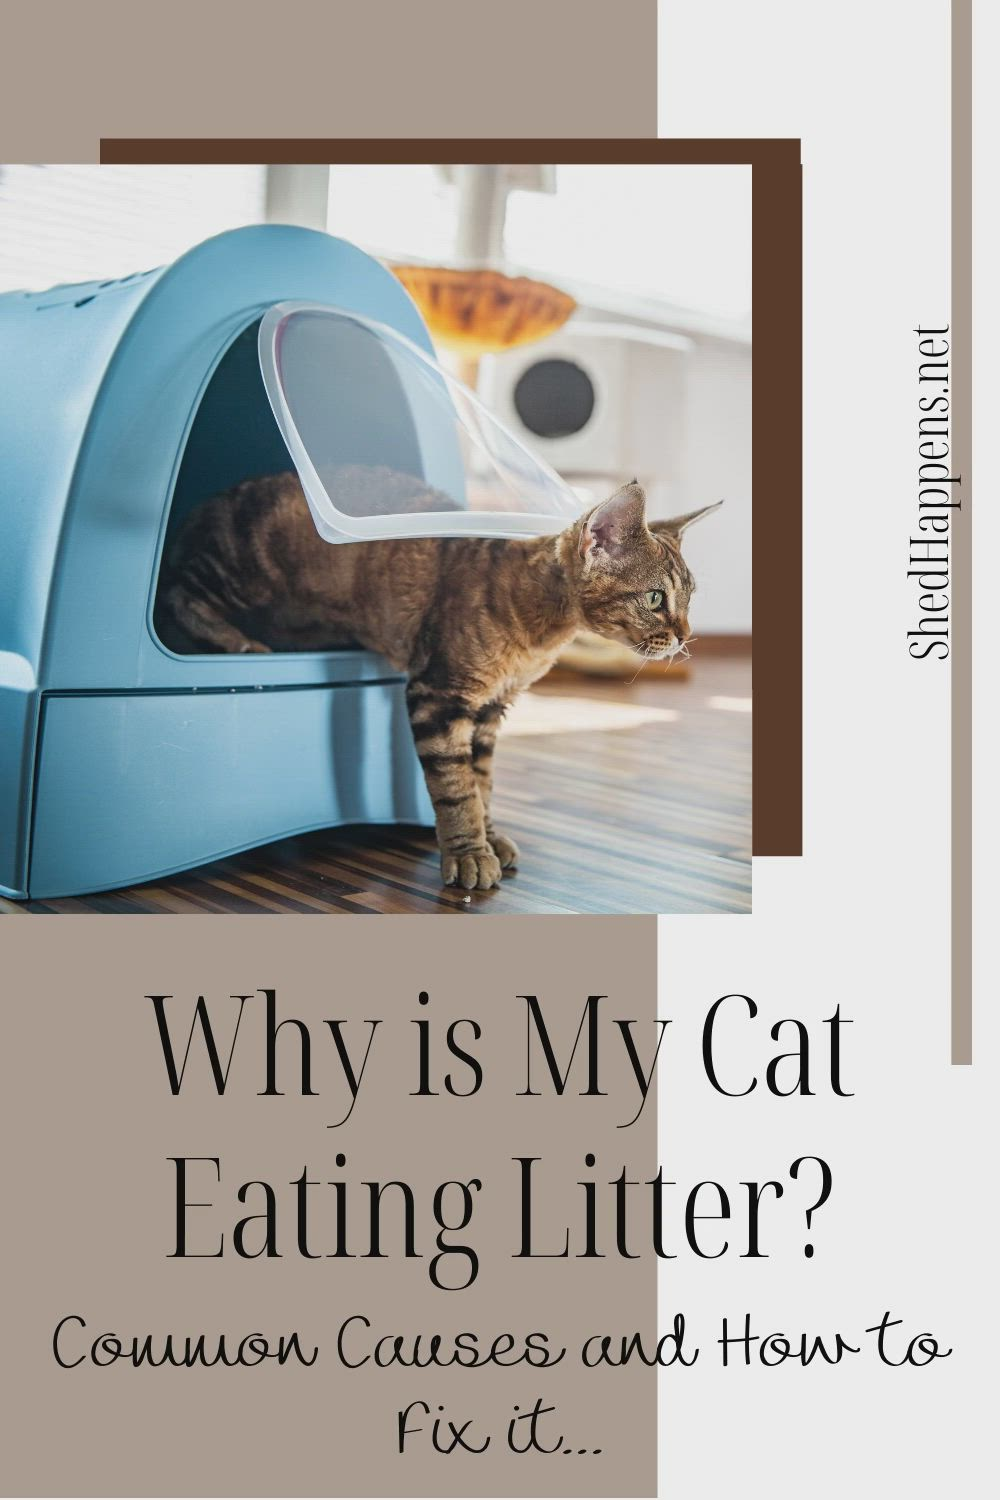 Is Your Cat Eating Litter Here S How To Stop It Video In 2020 Cat Health Care Cat Health Problems Litter